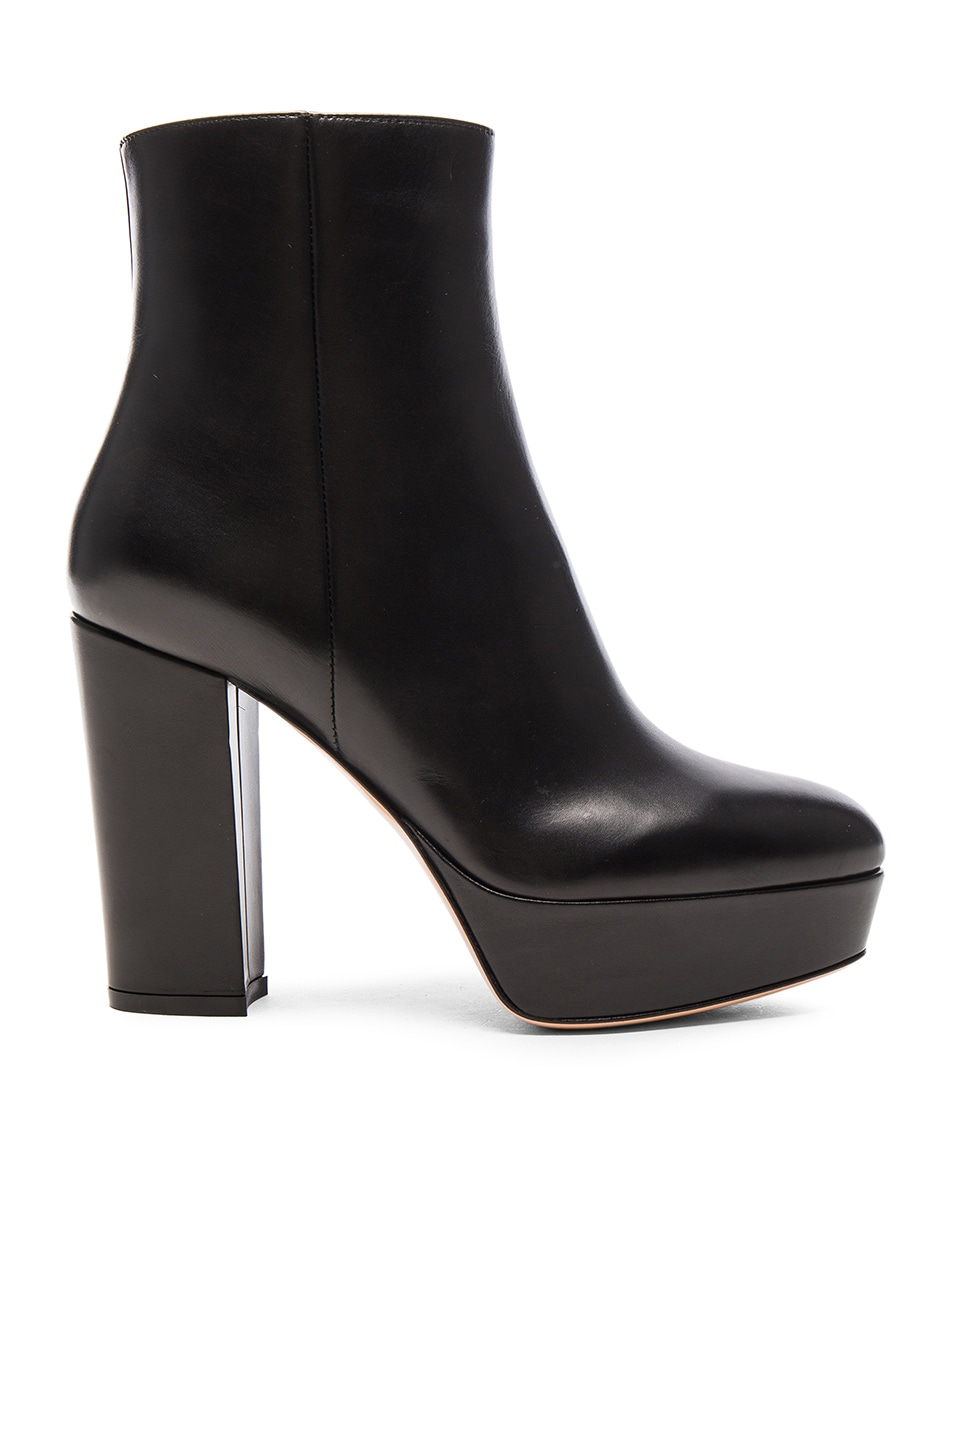 Image 1 of Gianvito Rossi Platform Leather Boots in Black